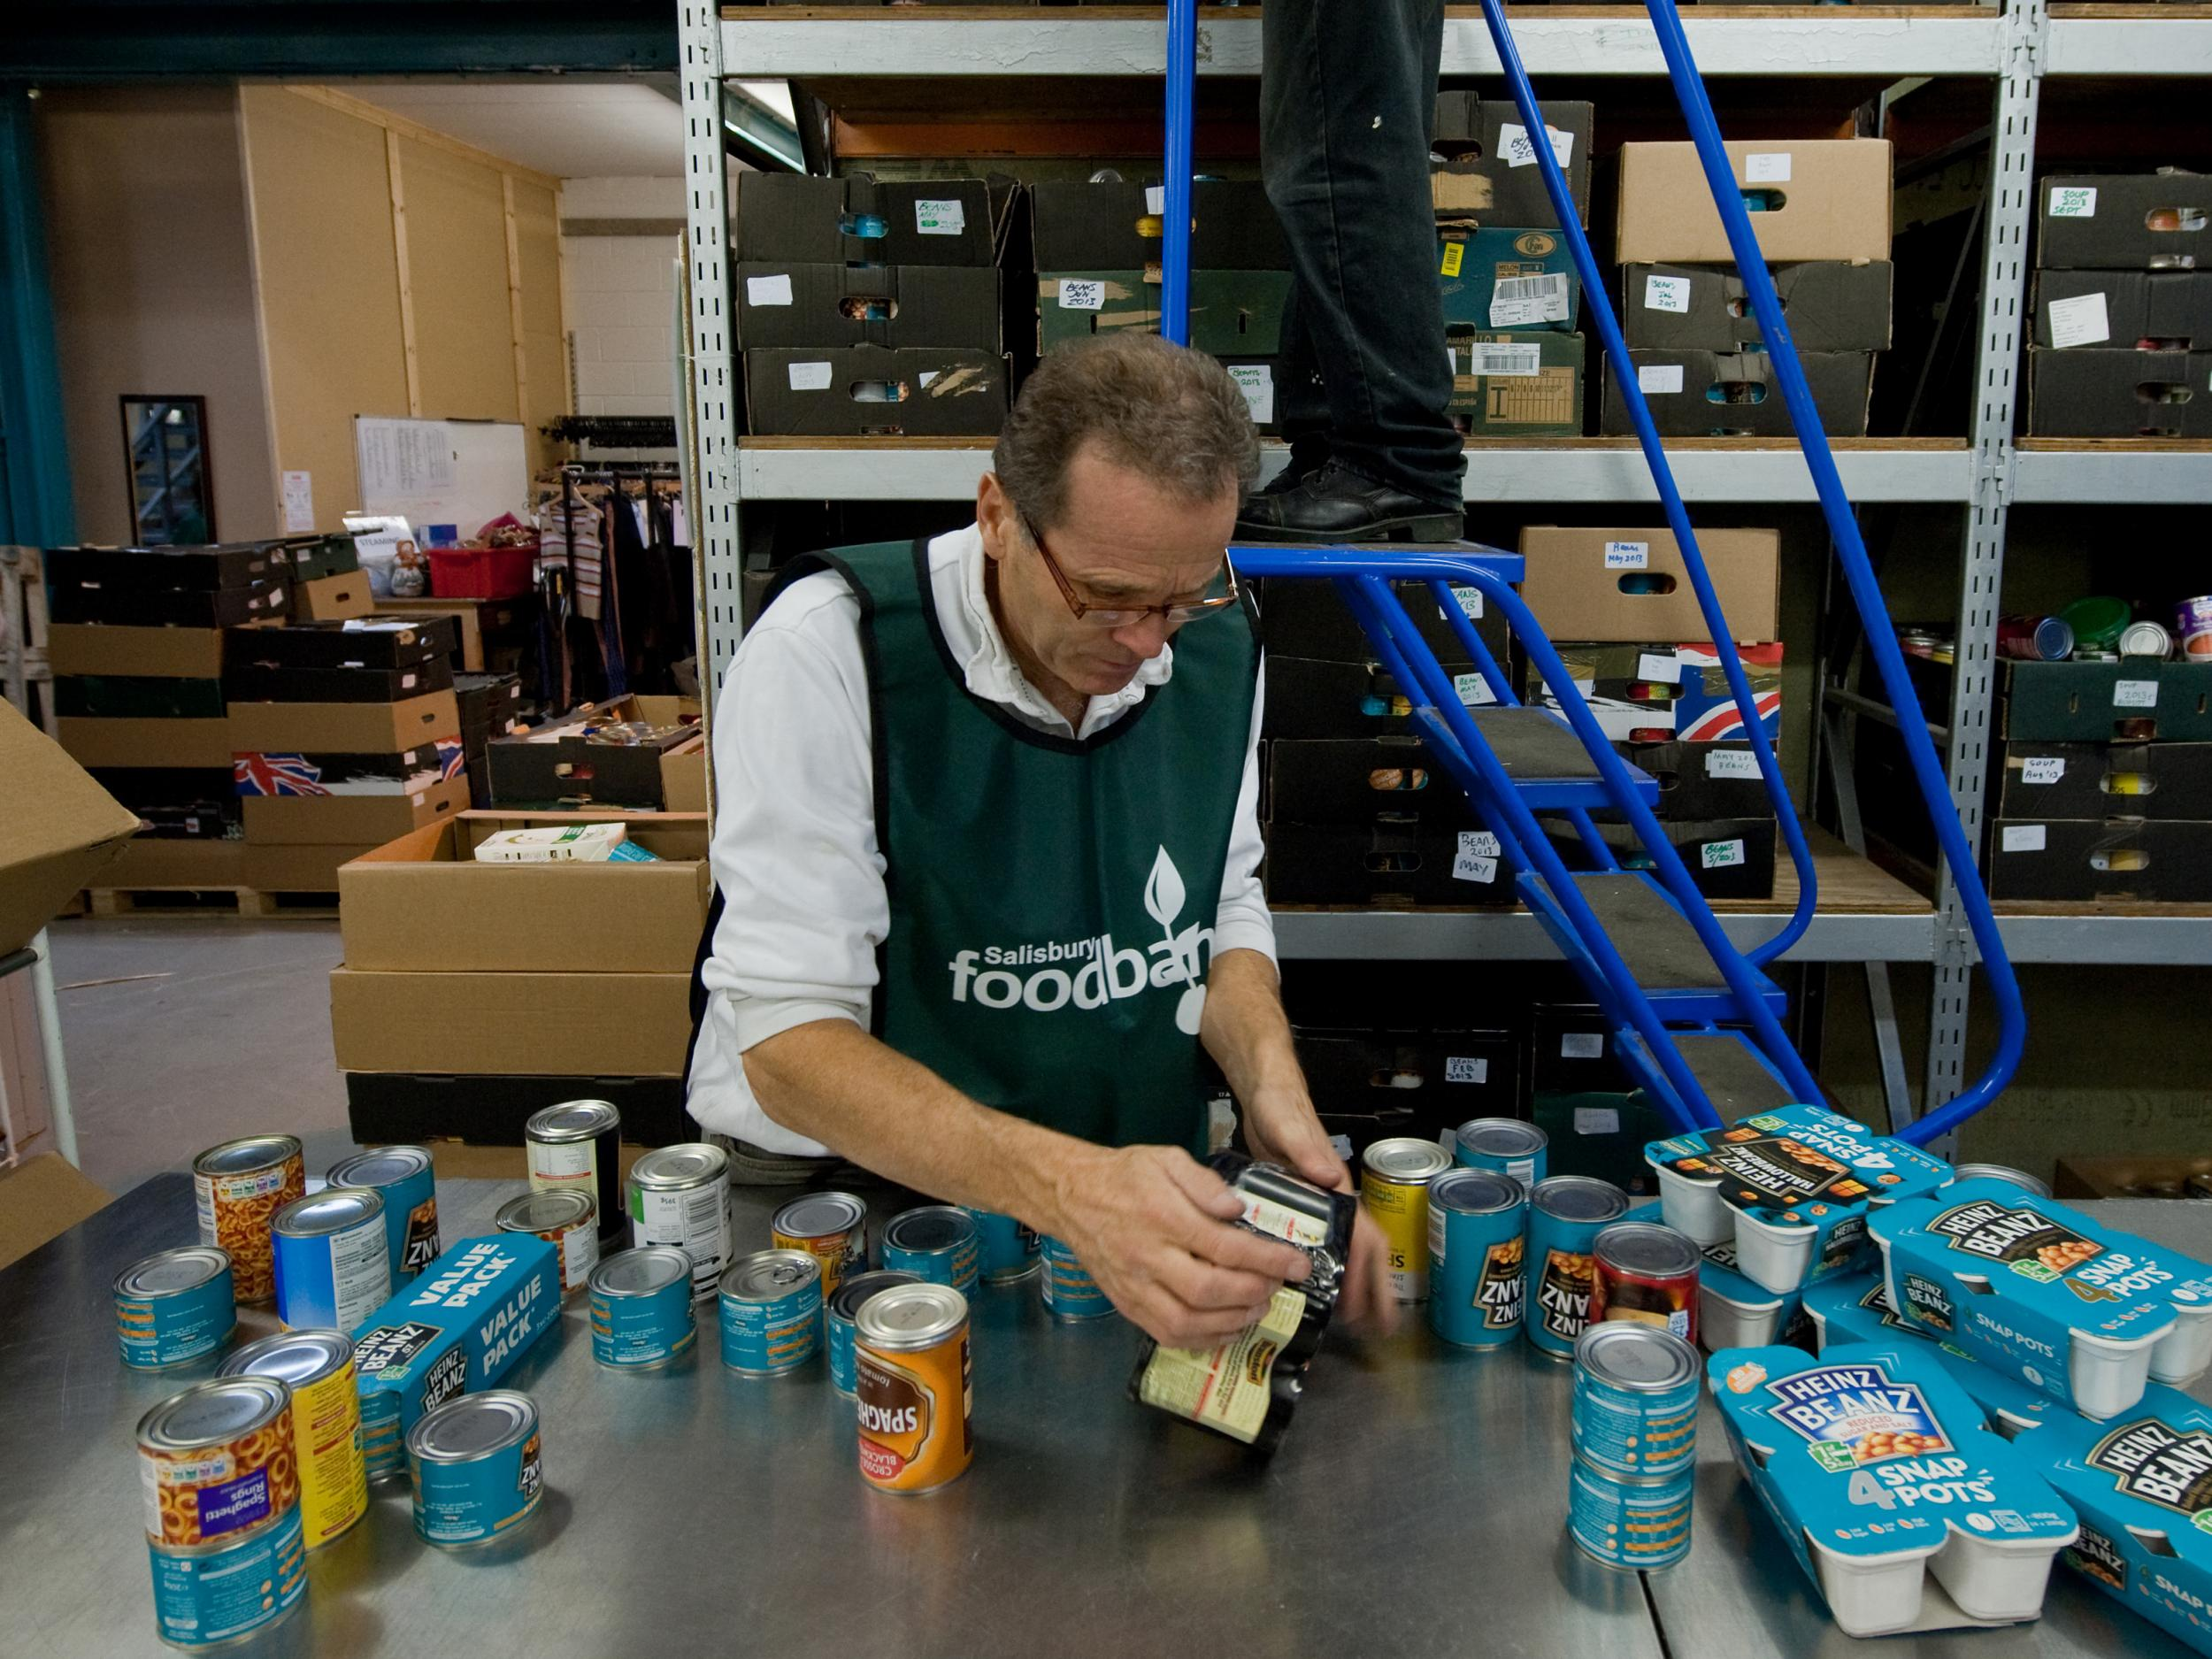 Tory ignorance of food banks exposed in figures blunder, Labour says